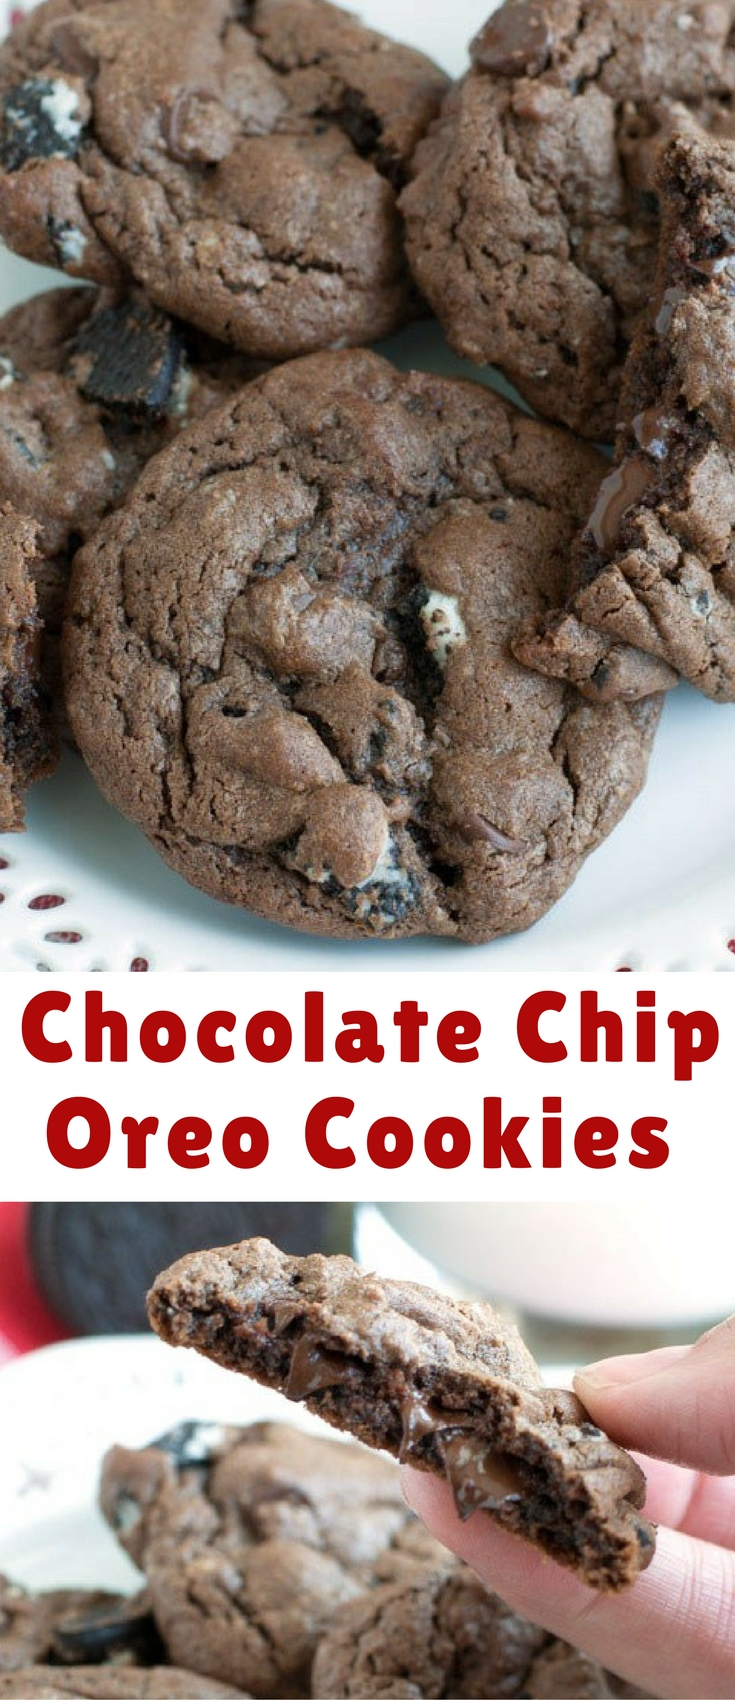 Chocolate Chip Oreo Cookies- rich chocolate cookies full of chopped Oreo cookies and chocolate chips.